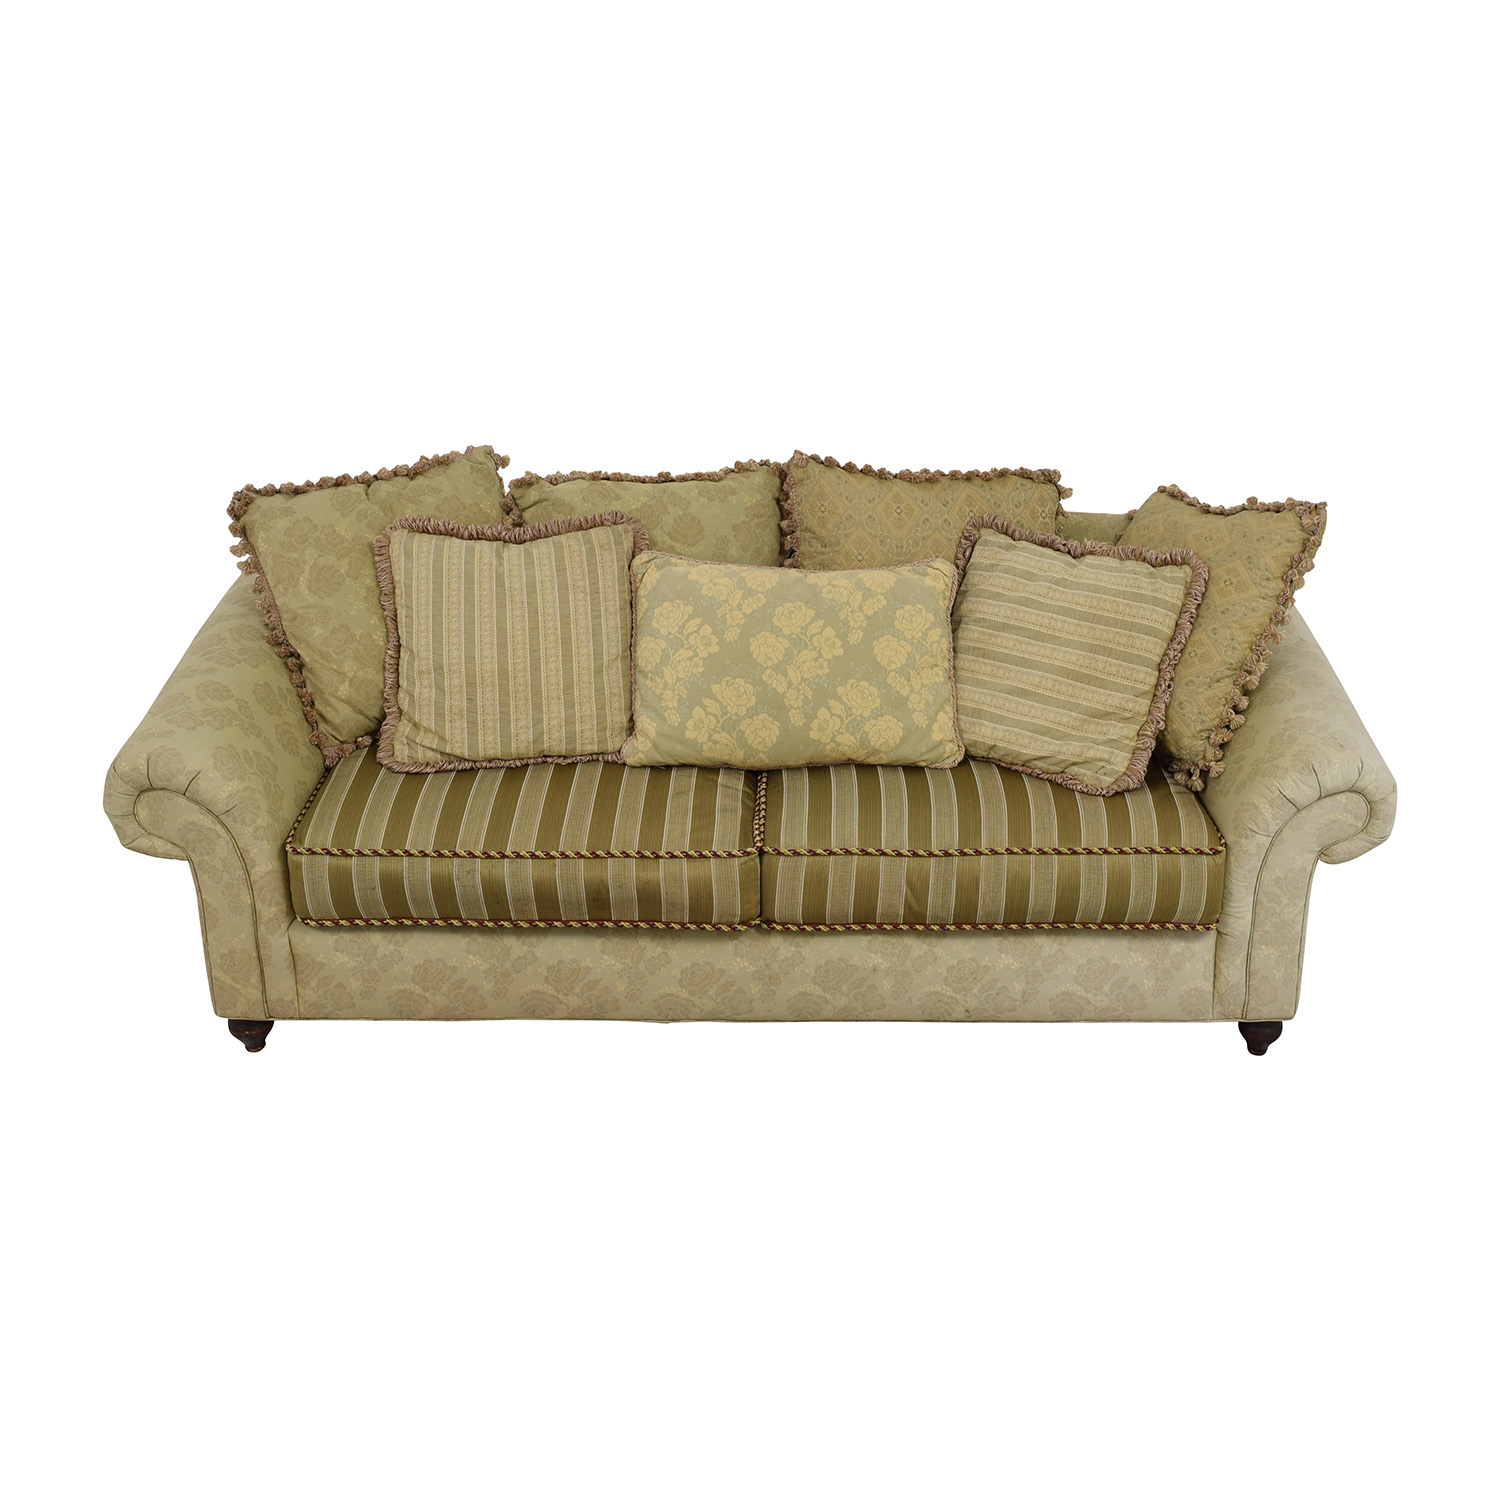 Domain NYC Domain NYC Multi-Patterned Green Floral and Stripe Sofa on sale